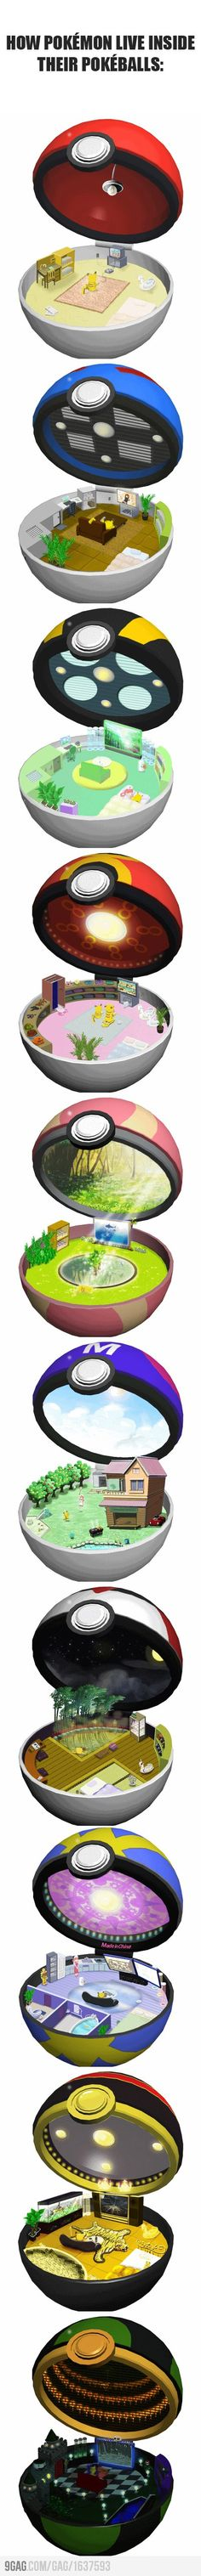 How Pokemon live inside their pokeballs (lol inside my heart)